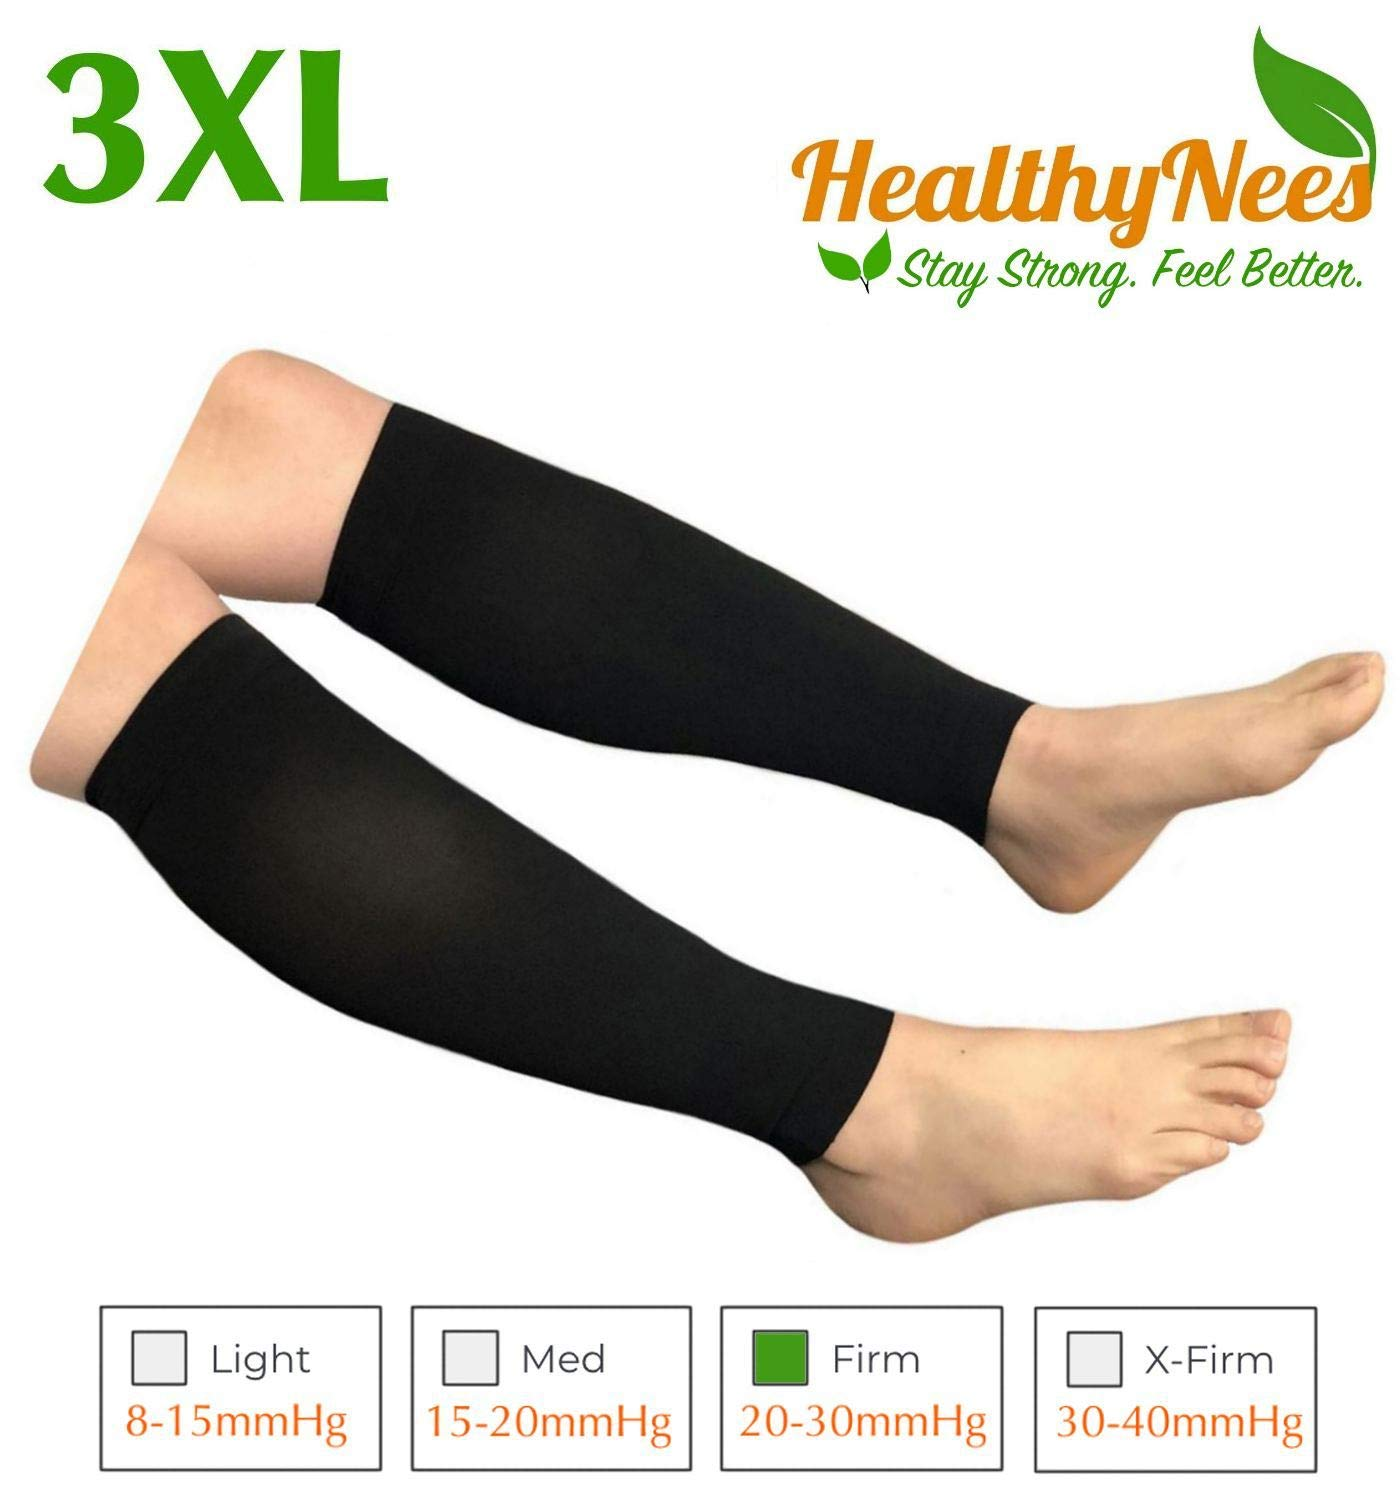 HealthyNees Shin Calf Sleeve 20-30 mmHg Medical Compression Circulation Extra Wide Plus Size Big Tall Leg Thick Calves Firm Support (Black, Big Calf 3XL) by HealthyNees